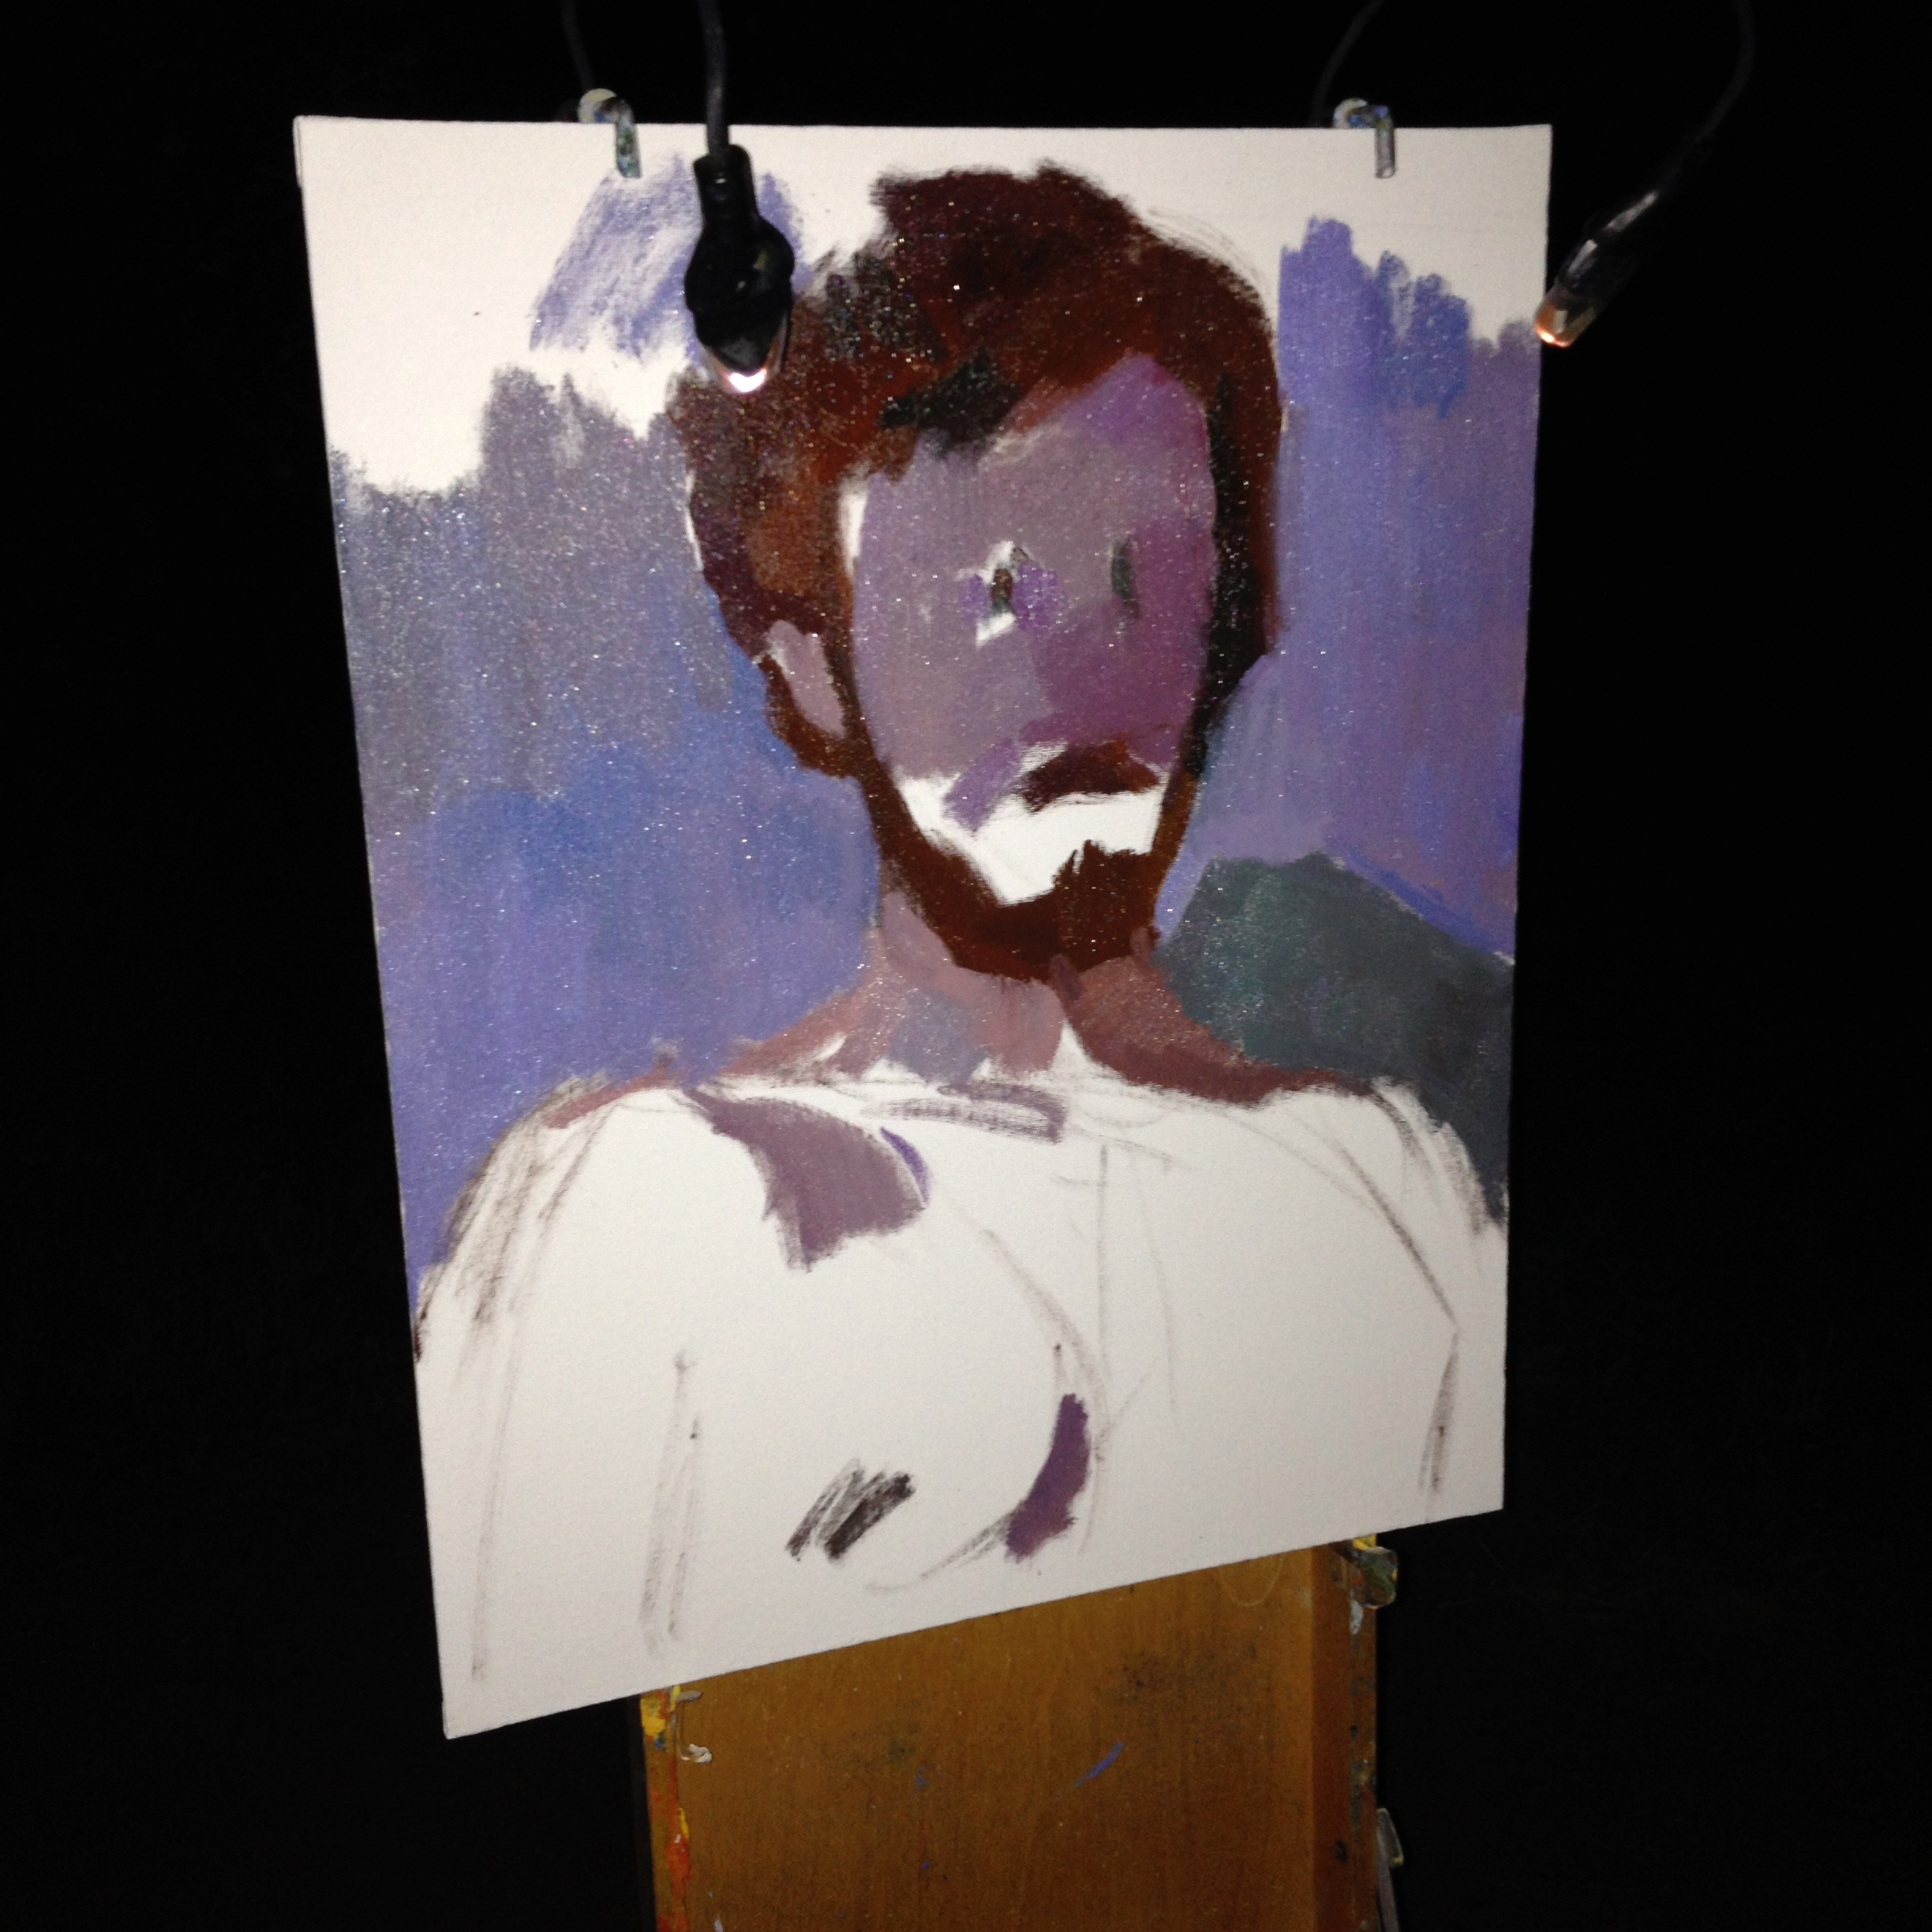 Self-portrait in progress. Color is greatly reduced at night, but we can still see some things. Two small LED lights provide enough light to see my painting and the color on the palette. Looking for big shapes and color differences at this stage.